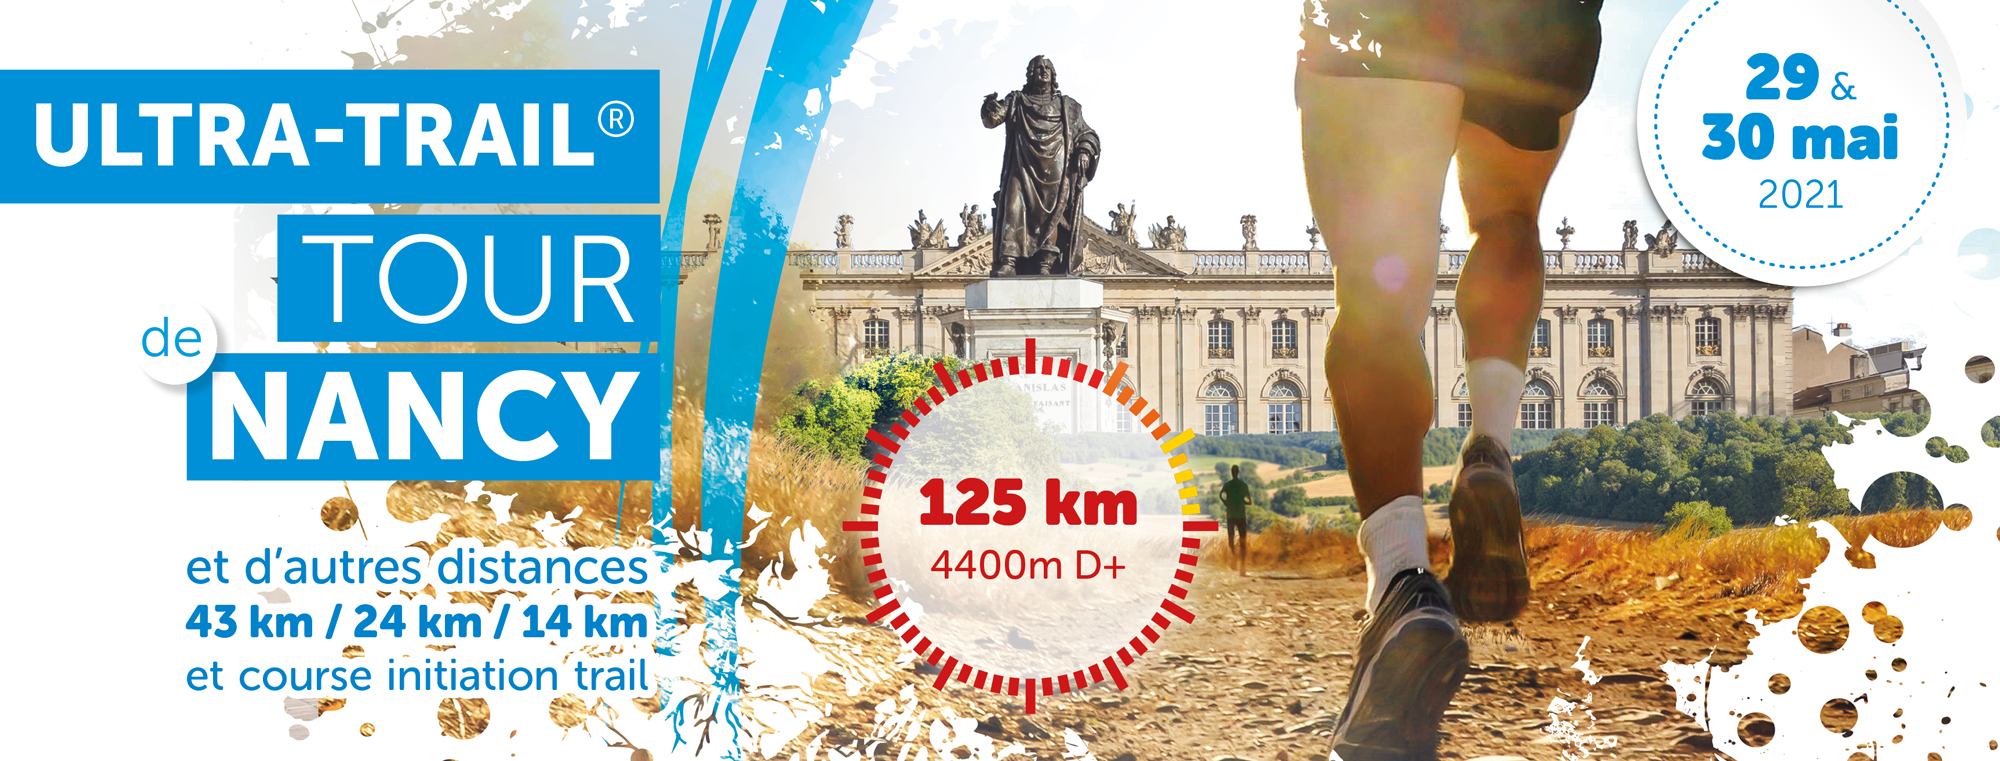 Ultra-Trail® Tour Nancy